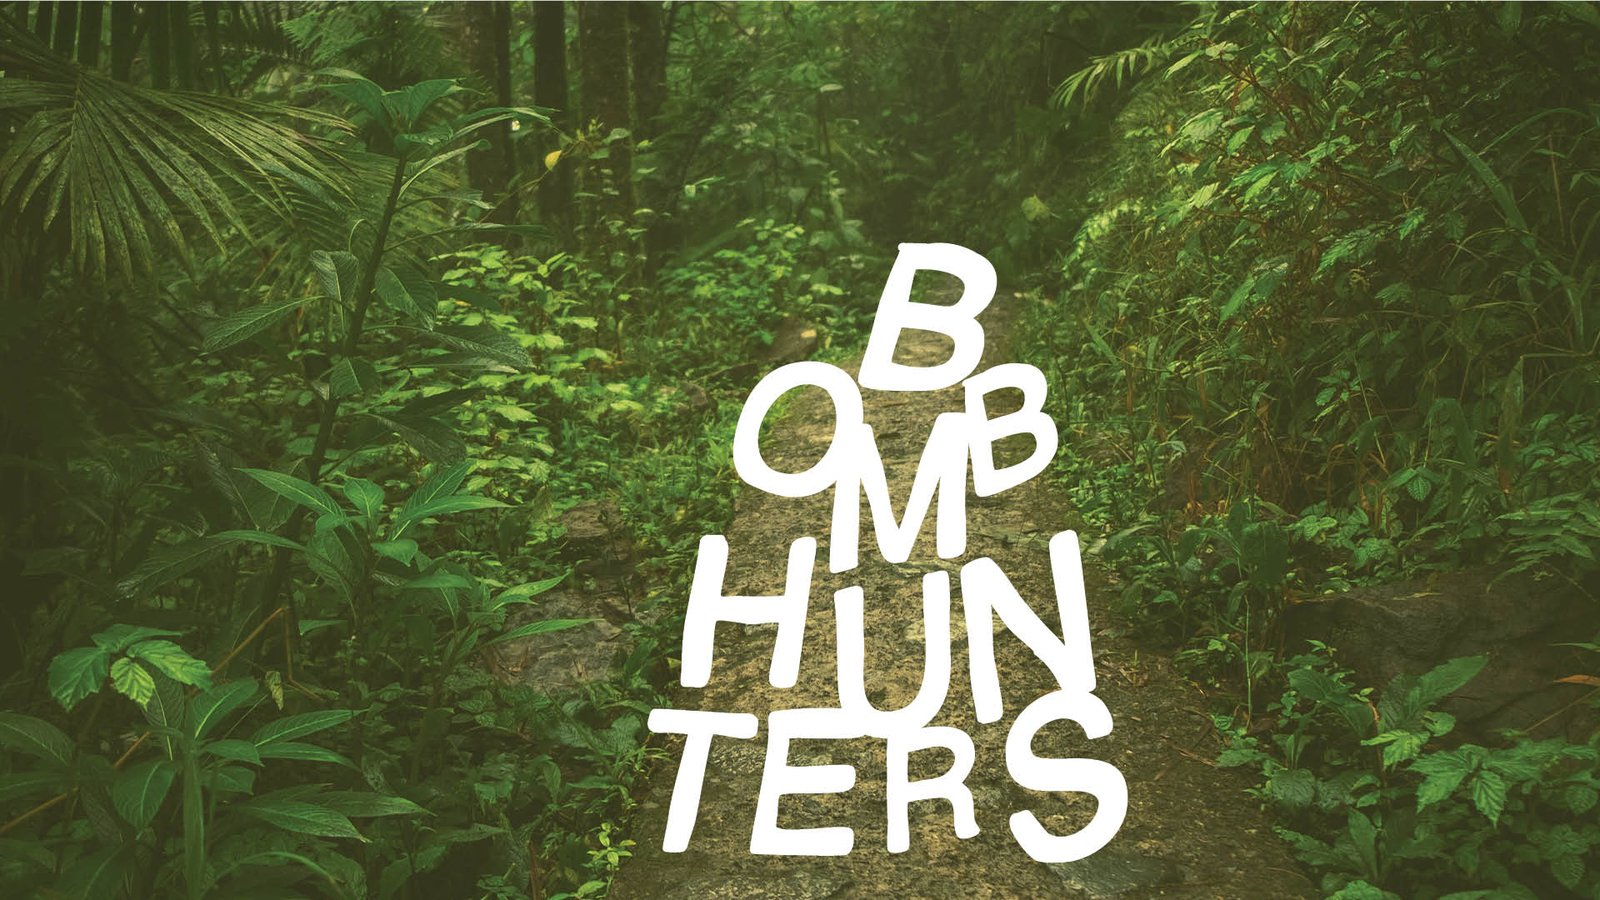 Bomb Hunters - Consequences of War in Cambodia